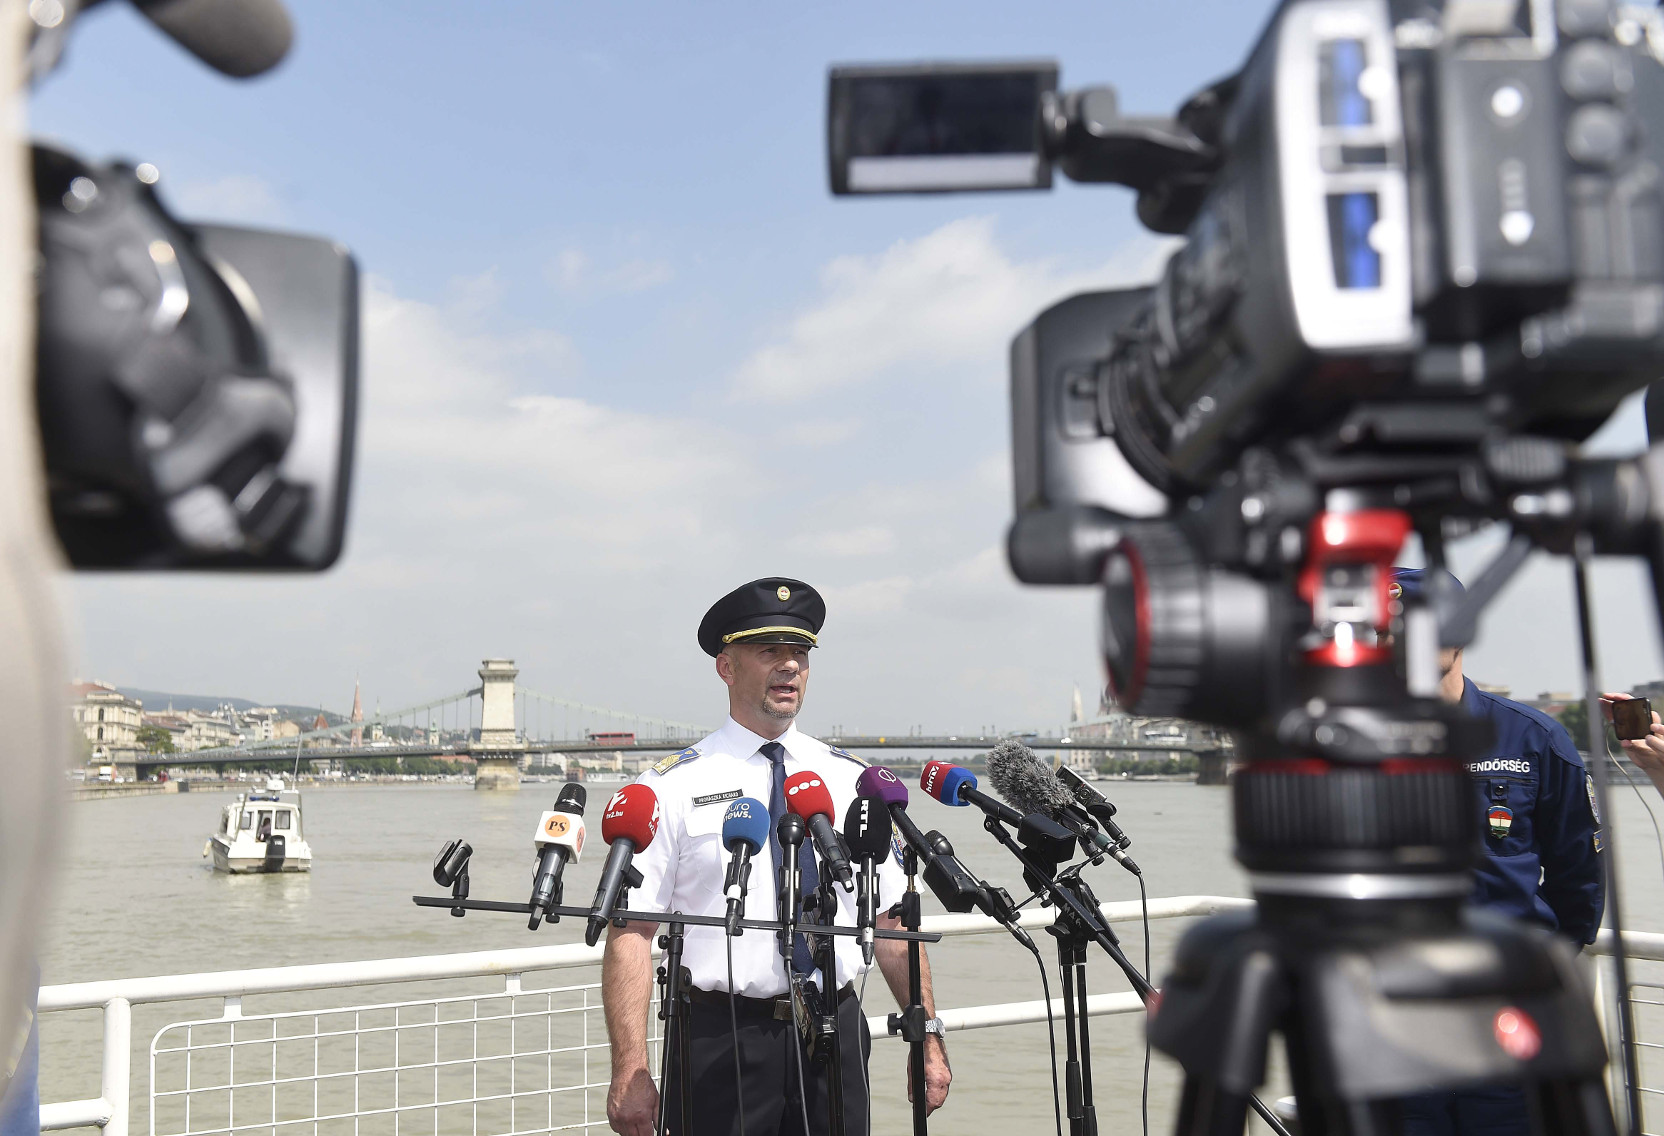 Video: Police Reveal Details Of Investigation Into Danube Boat Tragedy